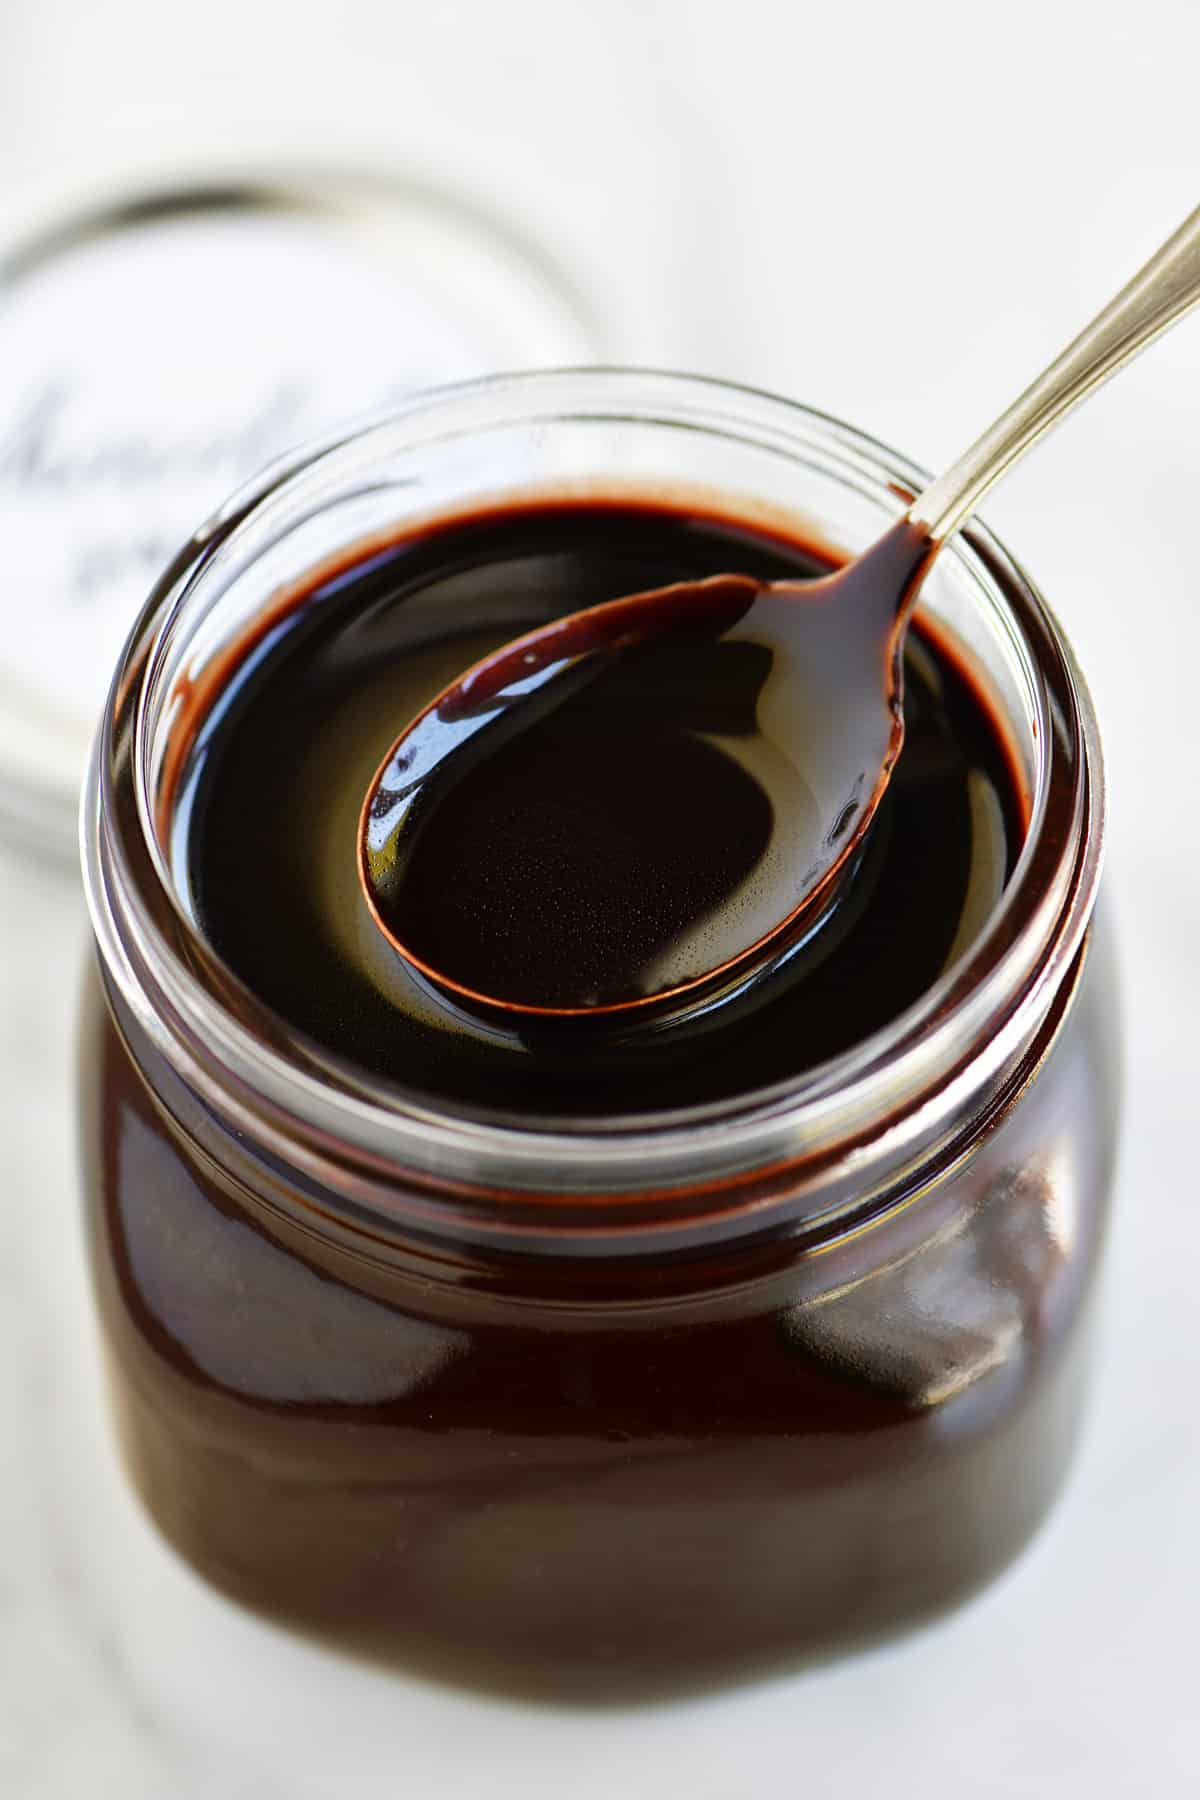 a spoon in a jar of hot chocolate sauce